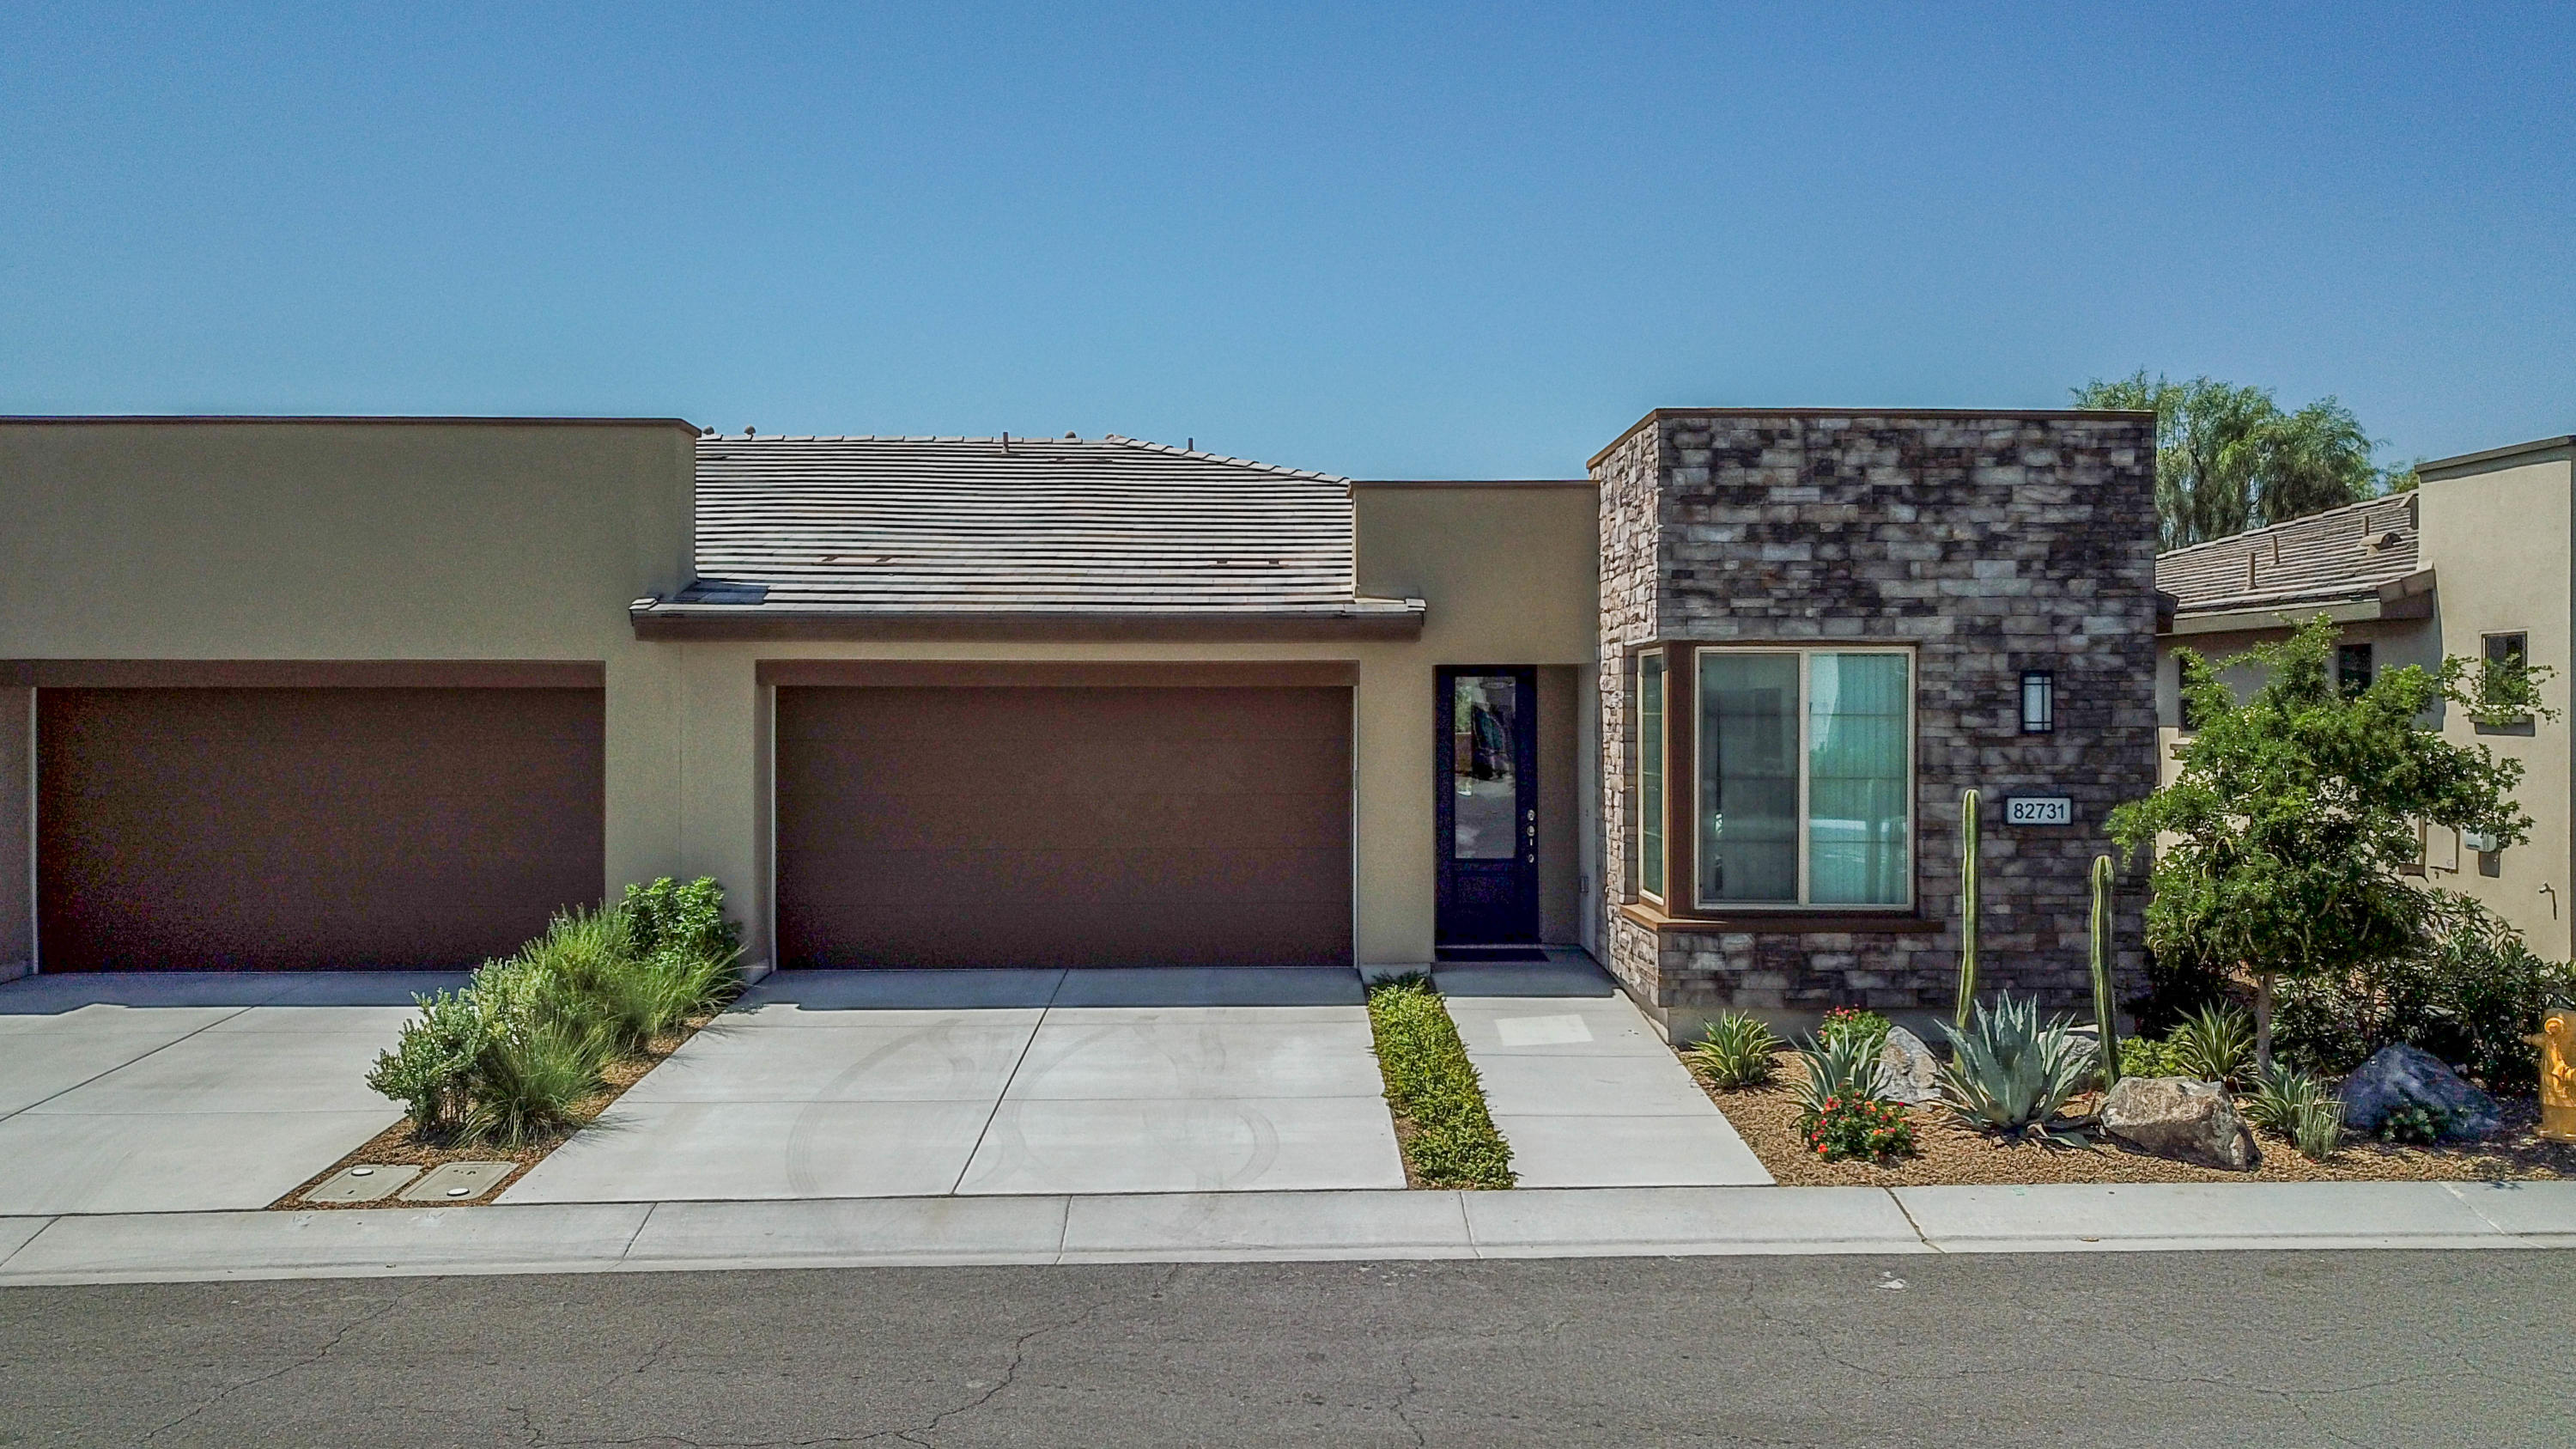 Photo of 82731 Rosewood Drive, Indio, CA 92201